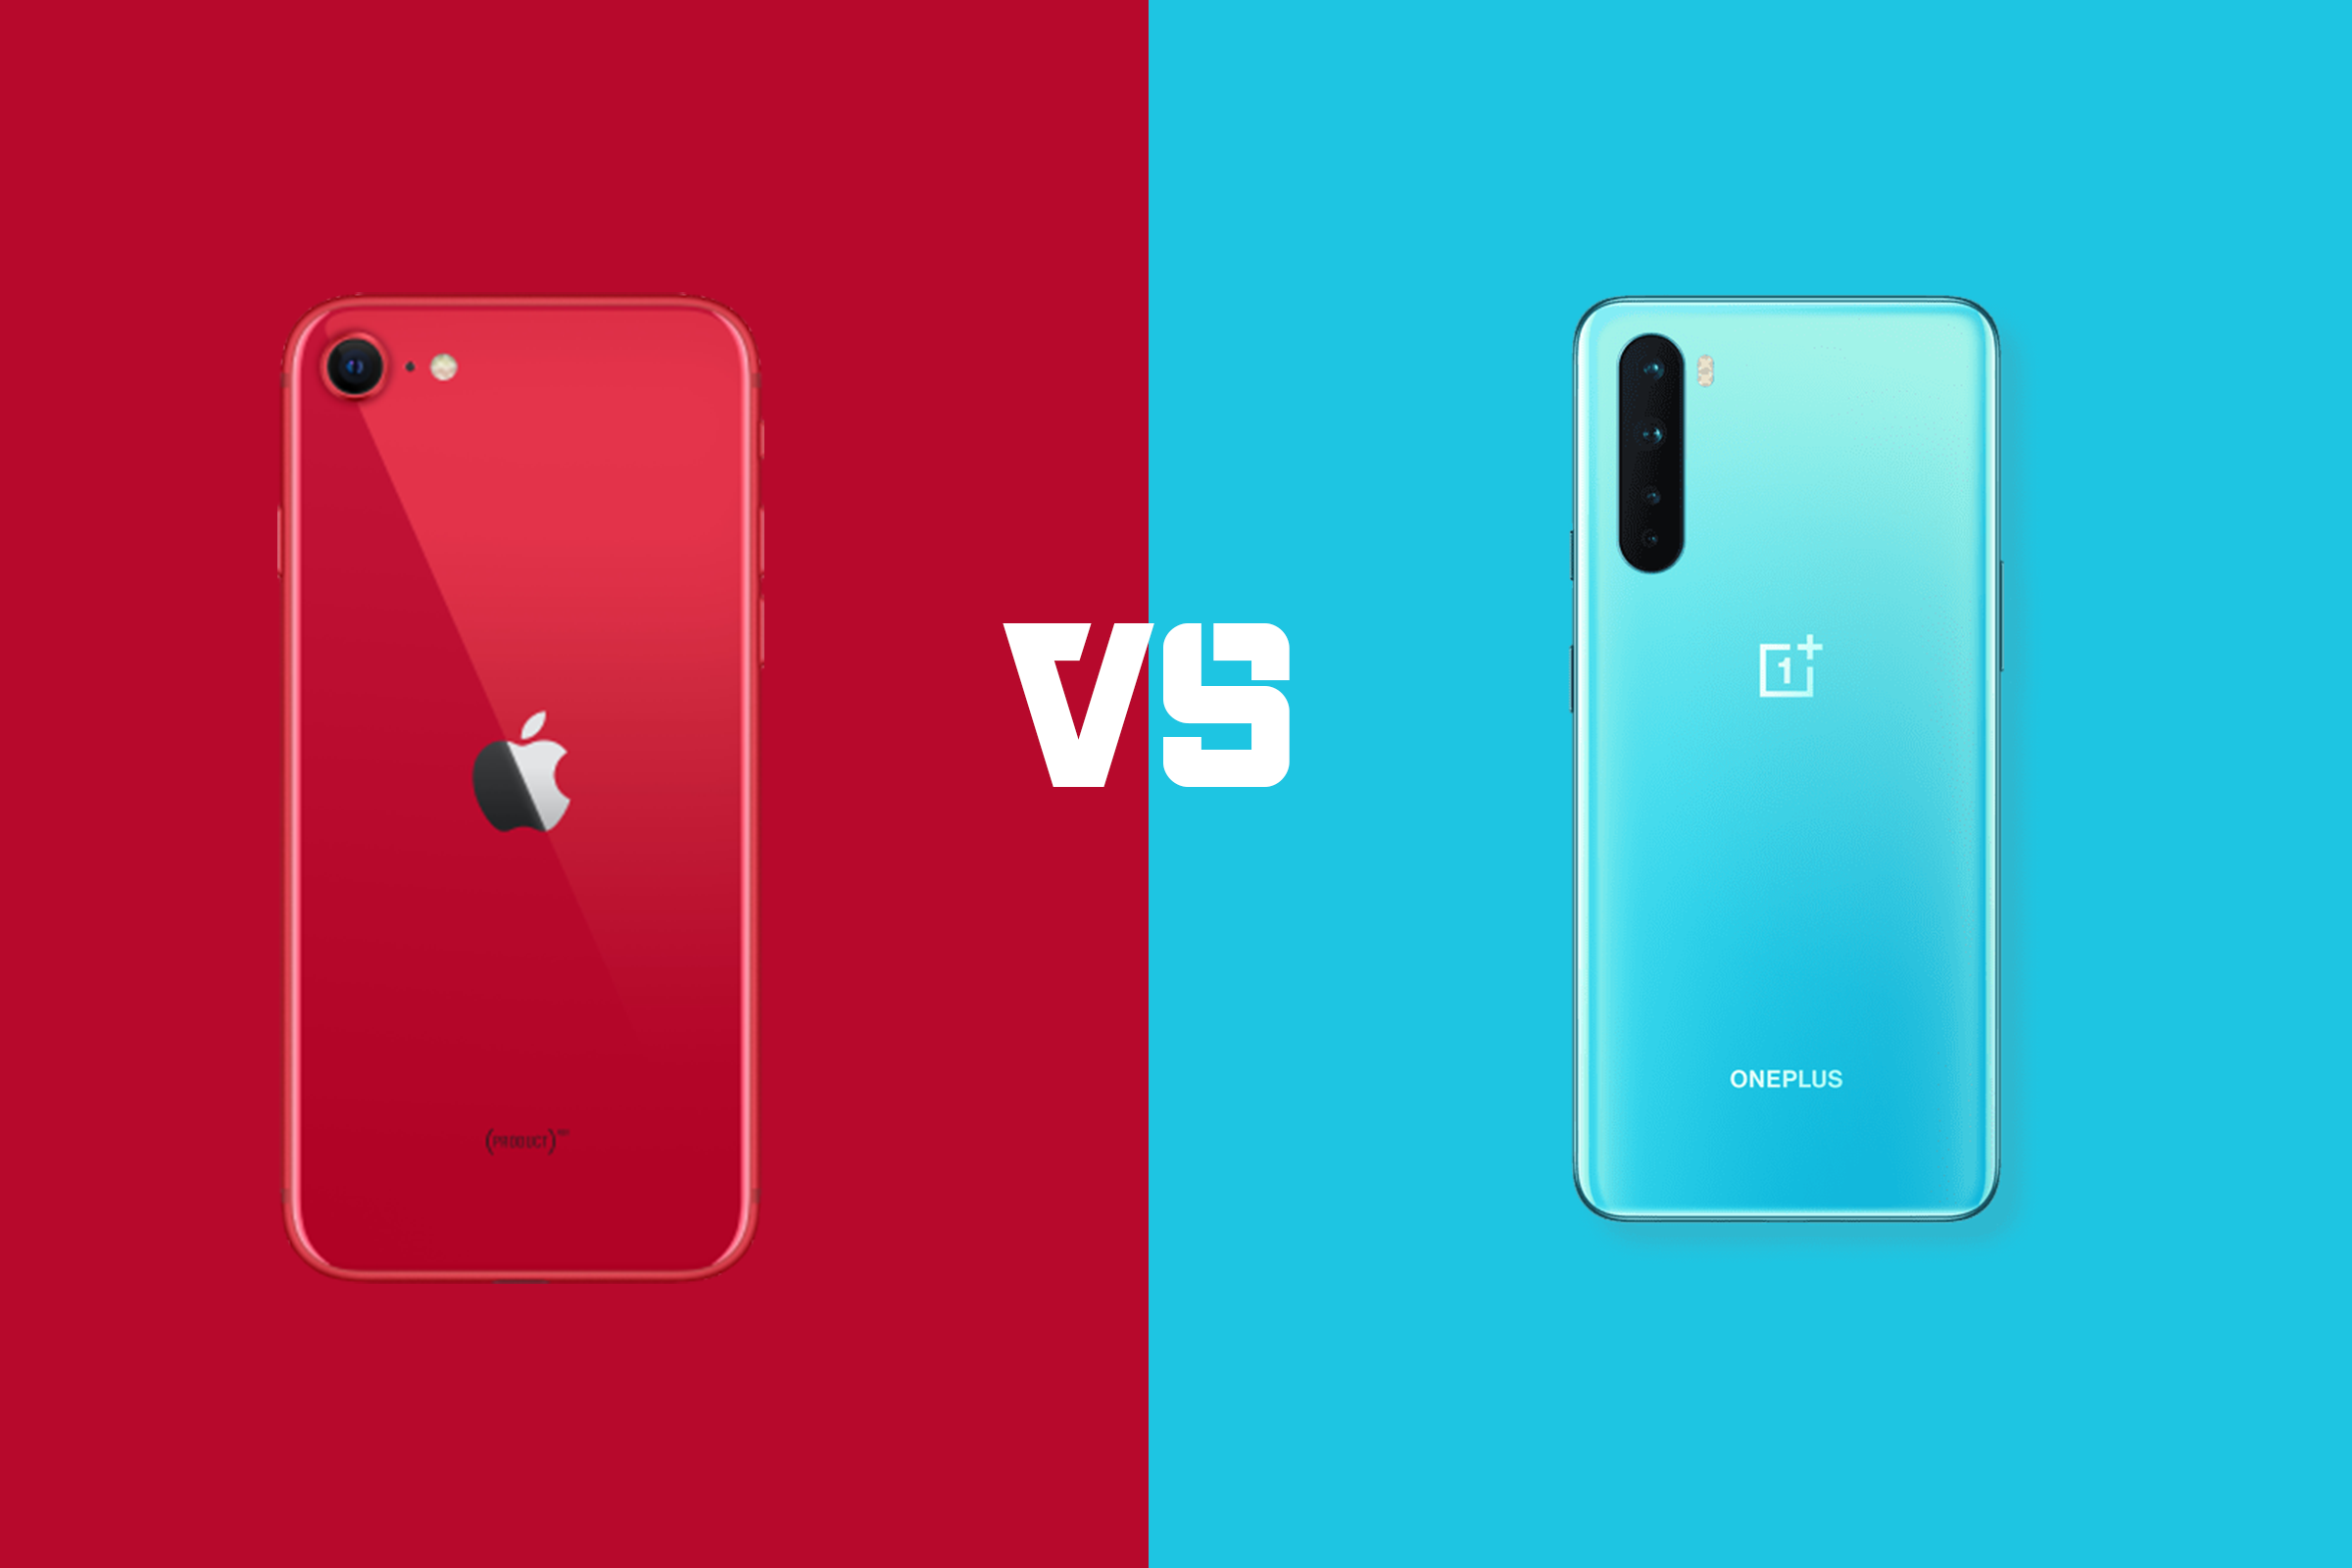 iPhone SE 2020 vs OnePlus Nord